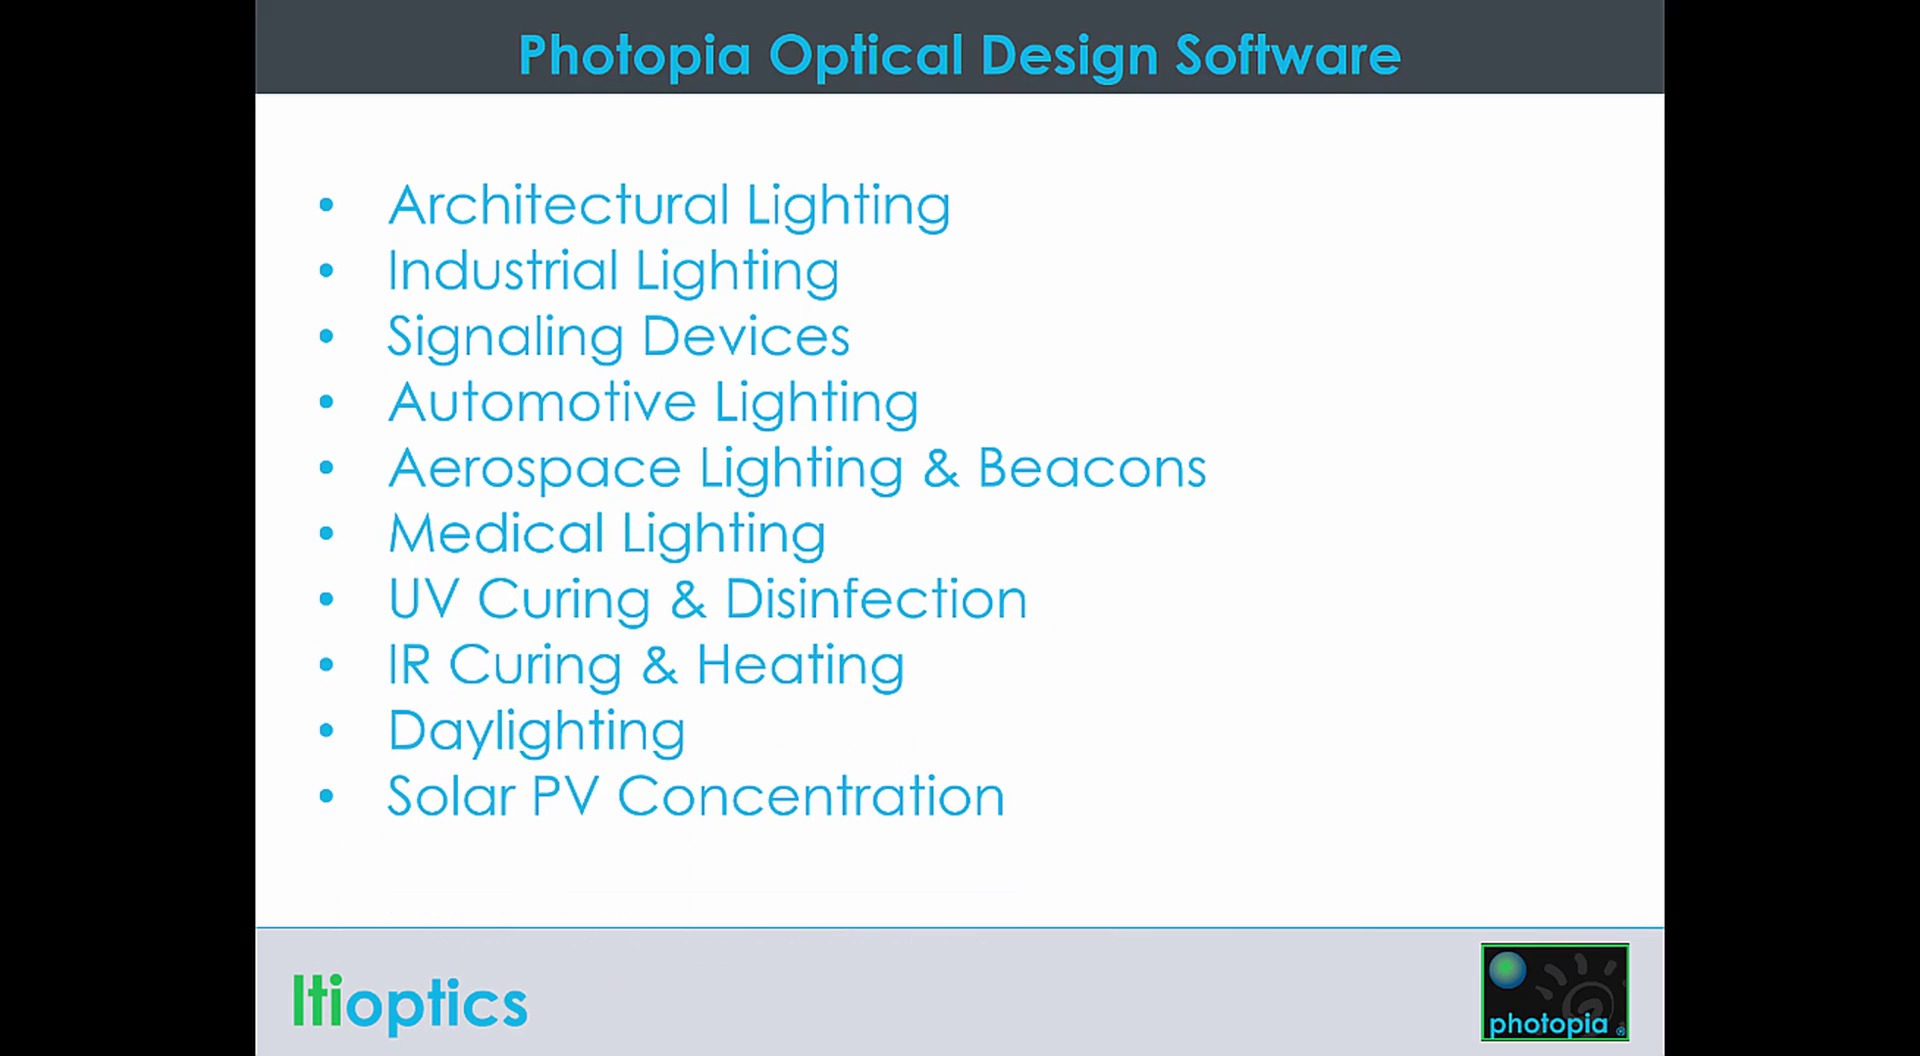 An Internet License For Visual Lighting 2017 Will Be An Annual Subscription  Service. An Annual Subscription Fee Provides One Seat Of An Internet  License ...